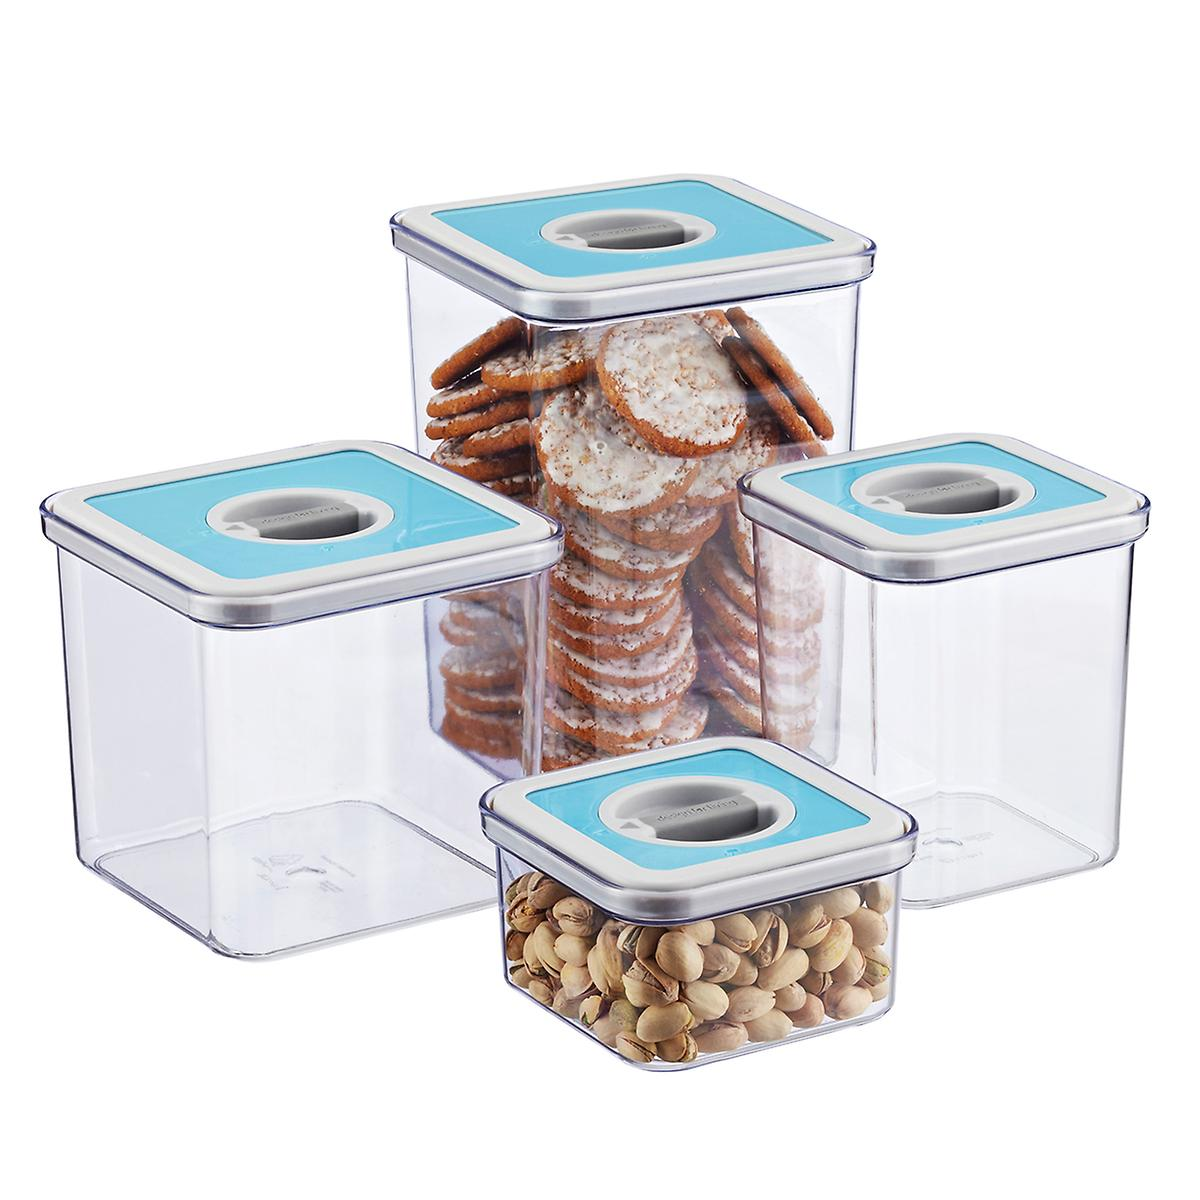 square perfect seal canisters the container store square perfect seal canisters